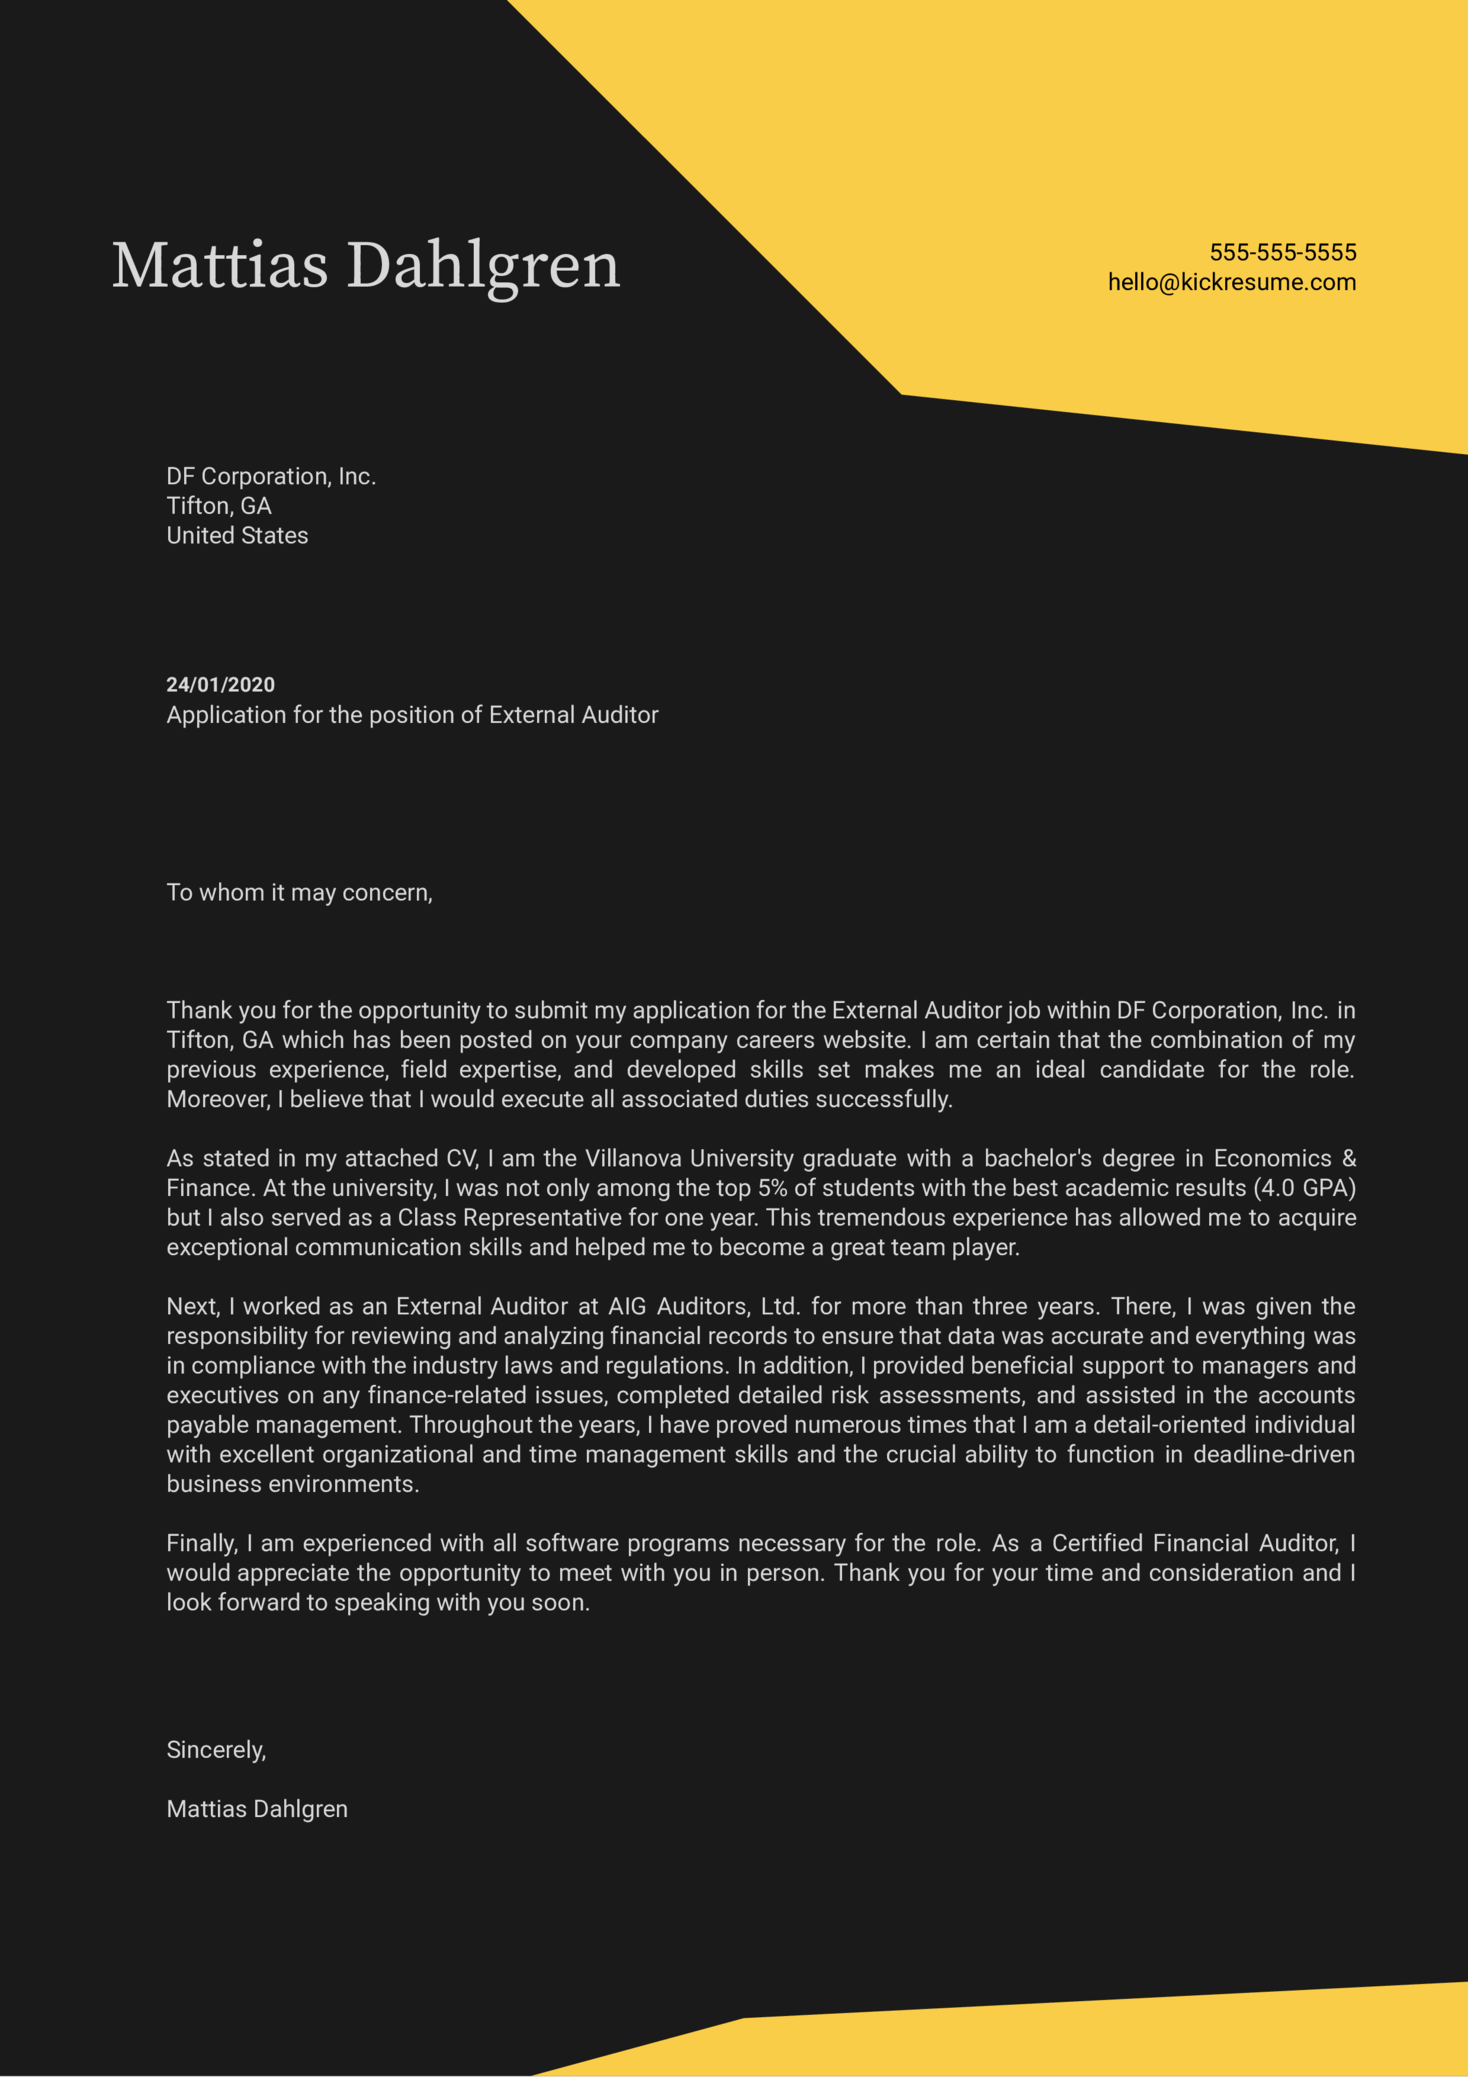 External Auditor Cover Letter Example